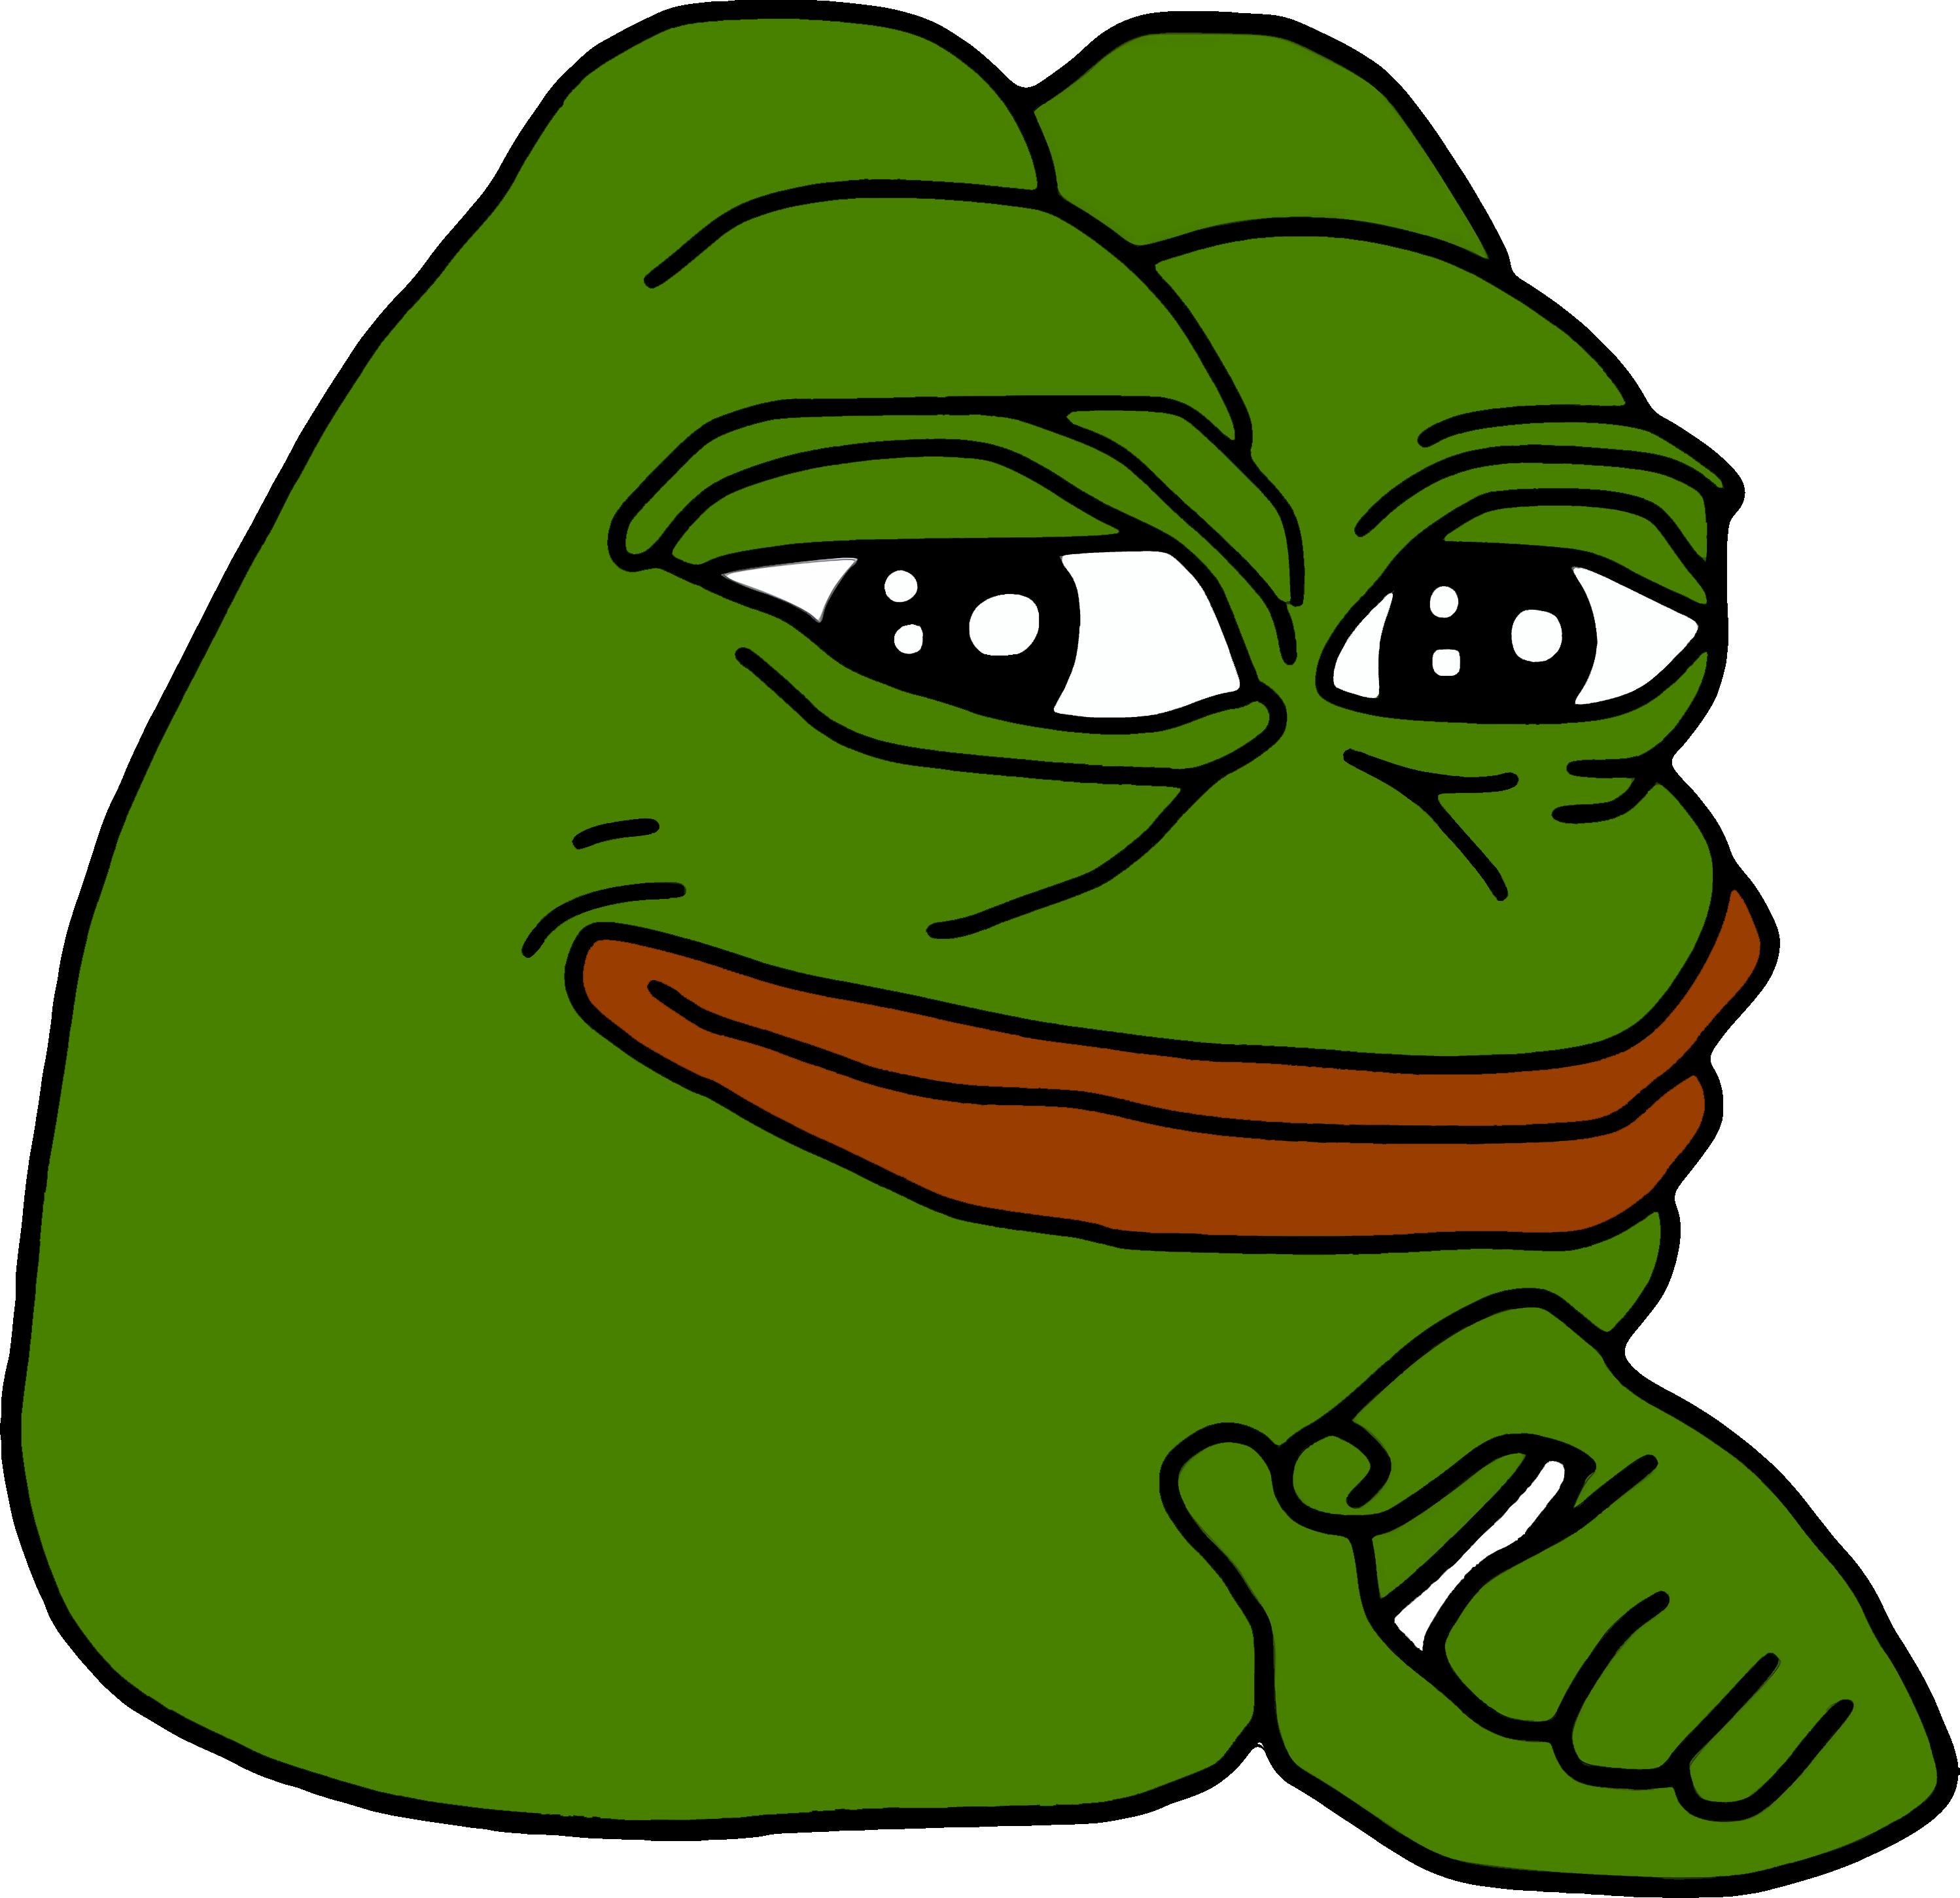 Crying pepe png. The frog meme clip